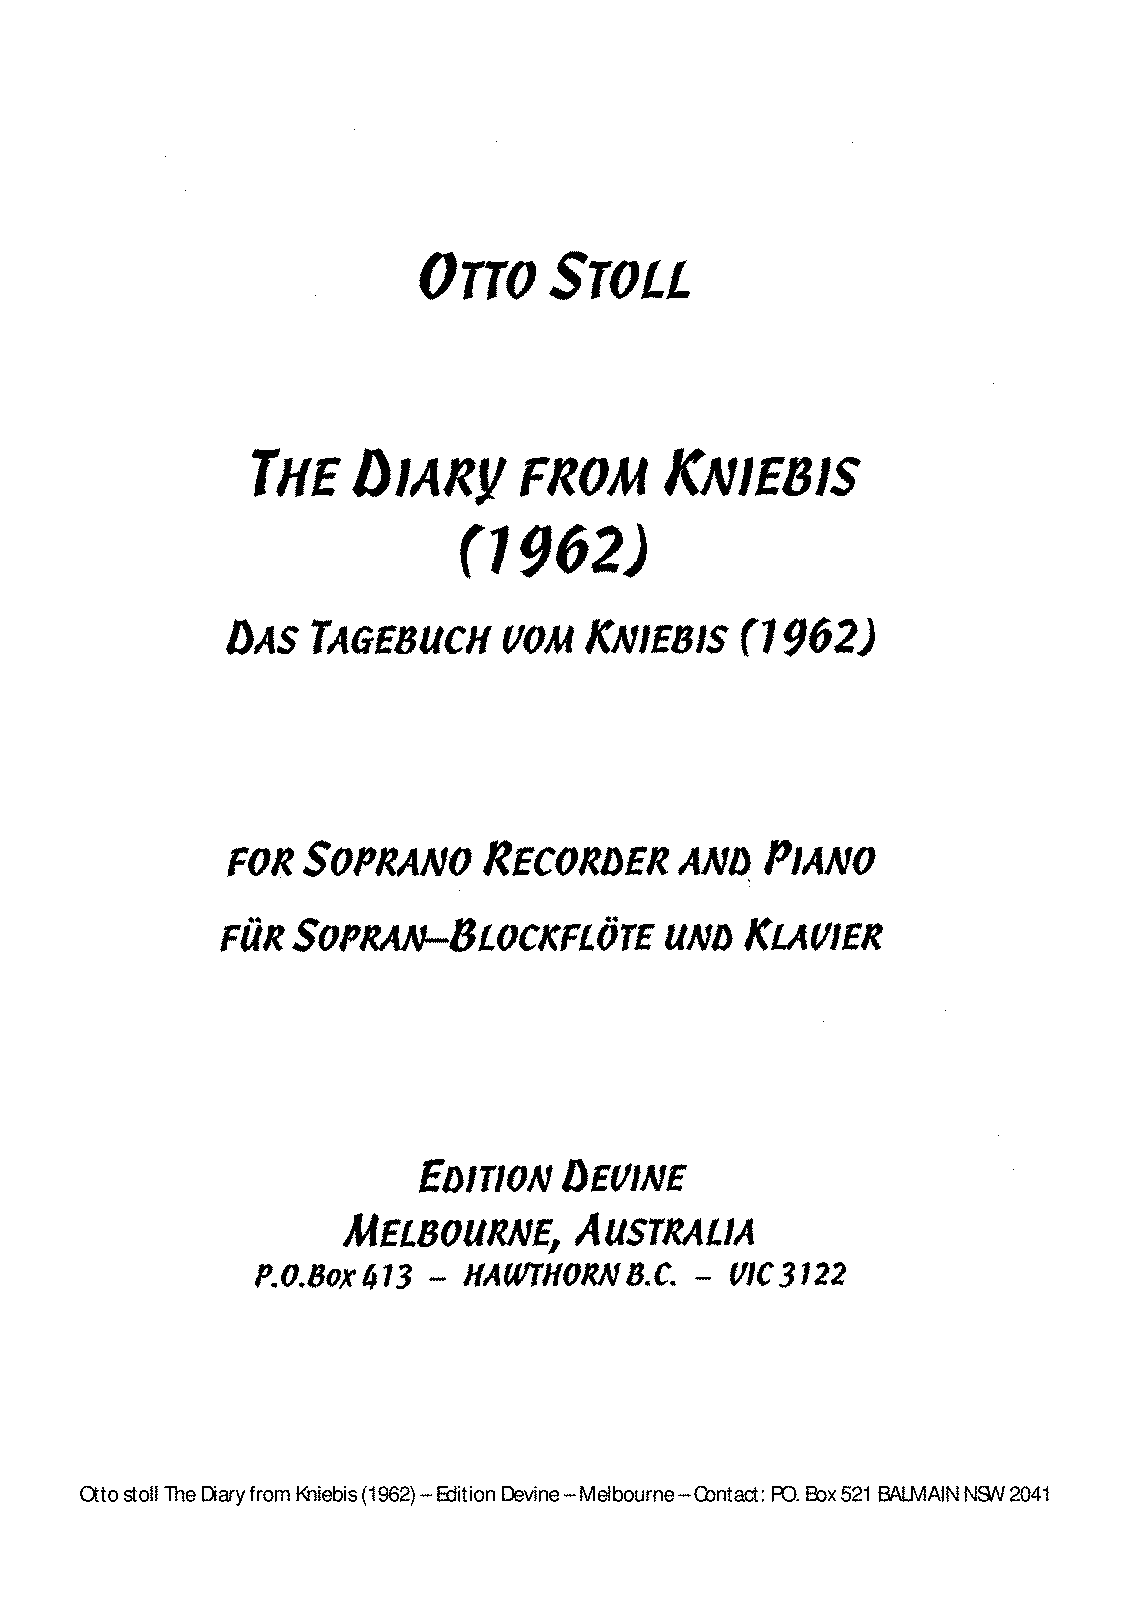 PMLP202888-Stoll Otto Diary from Kniebis.pdf